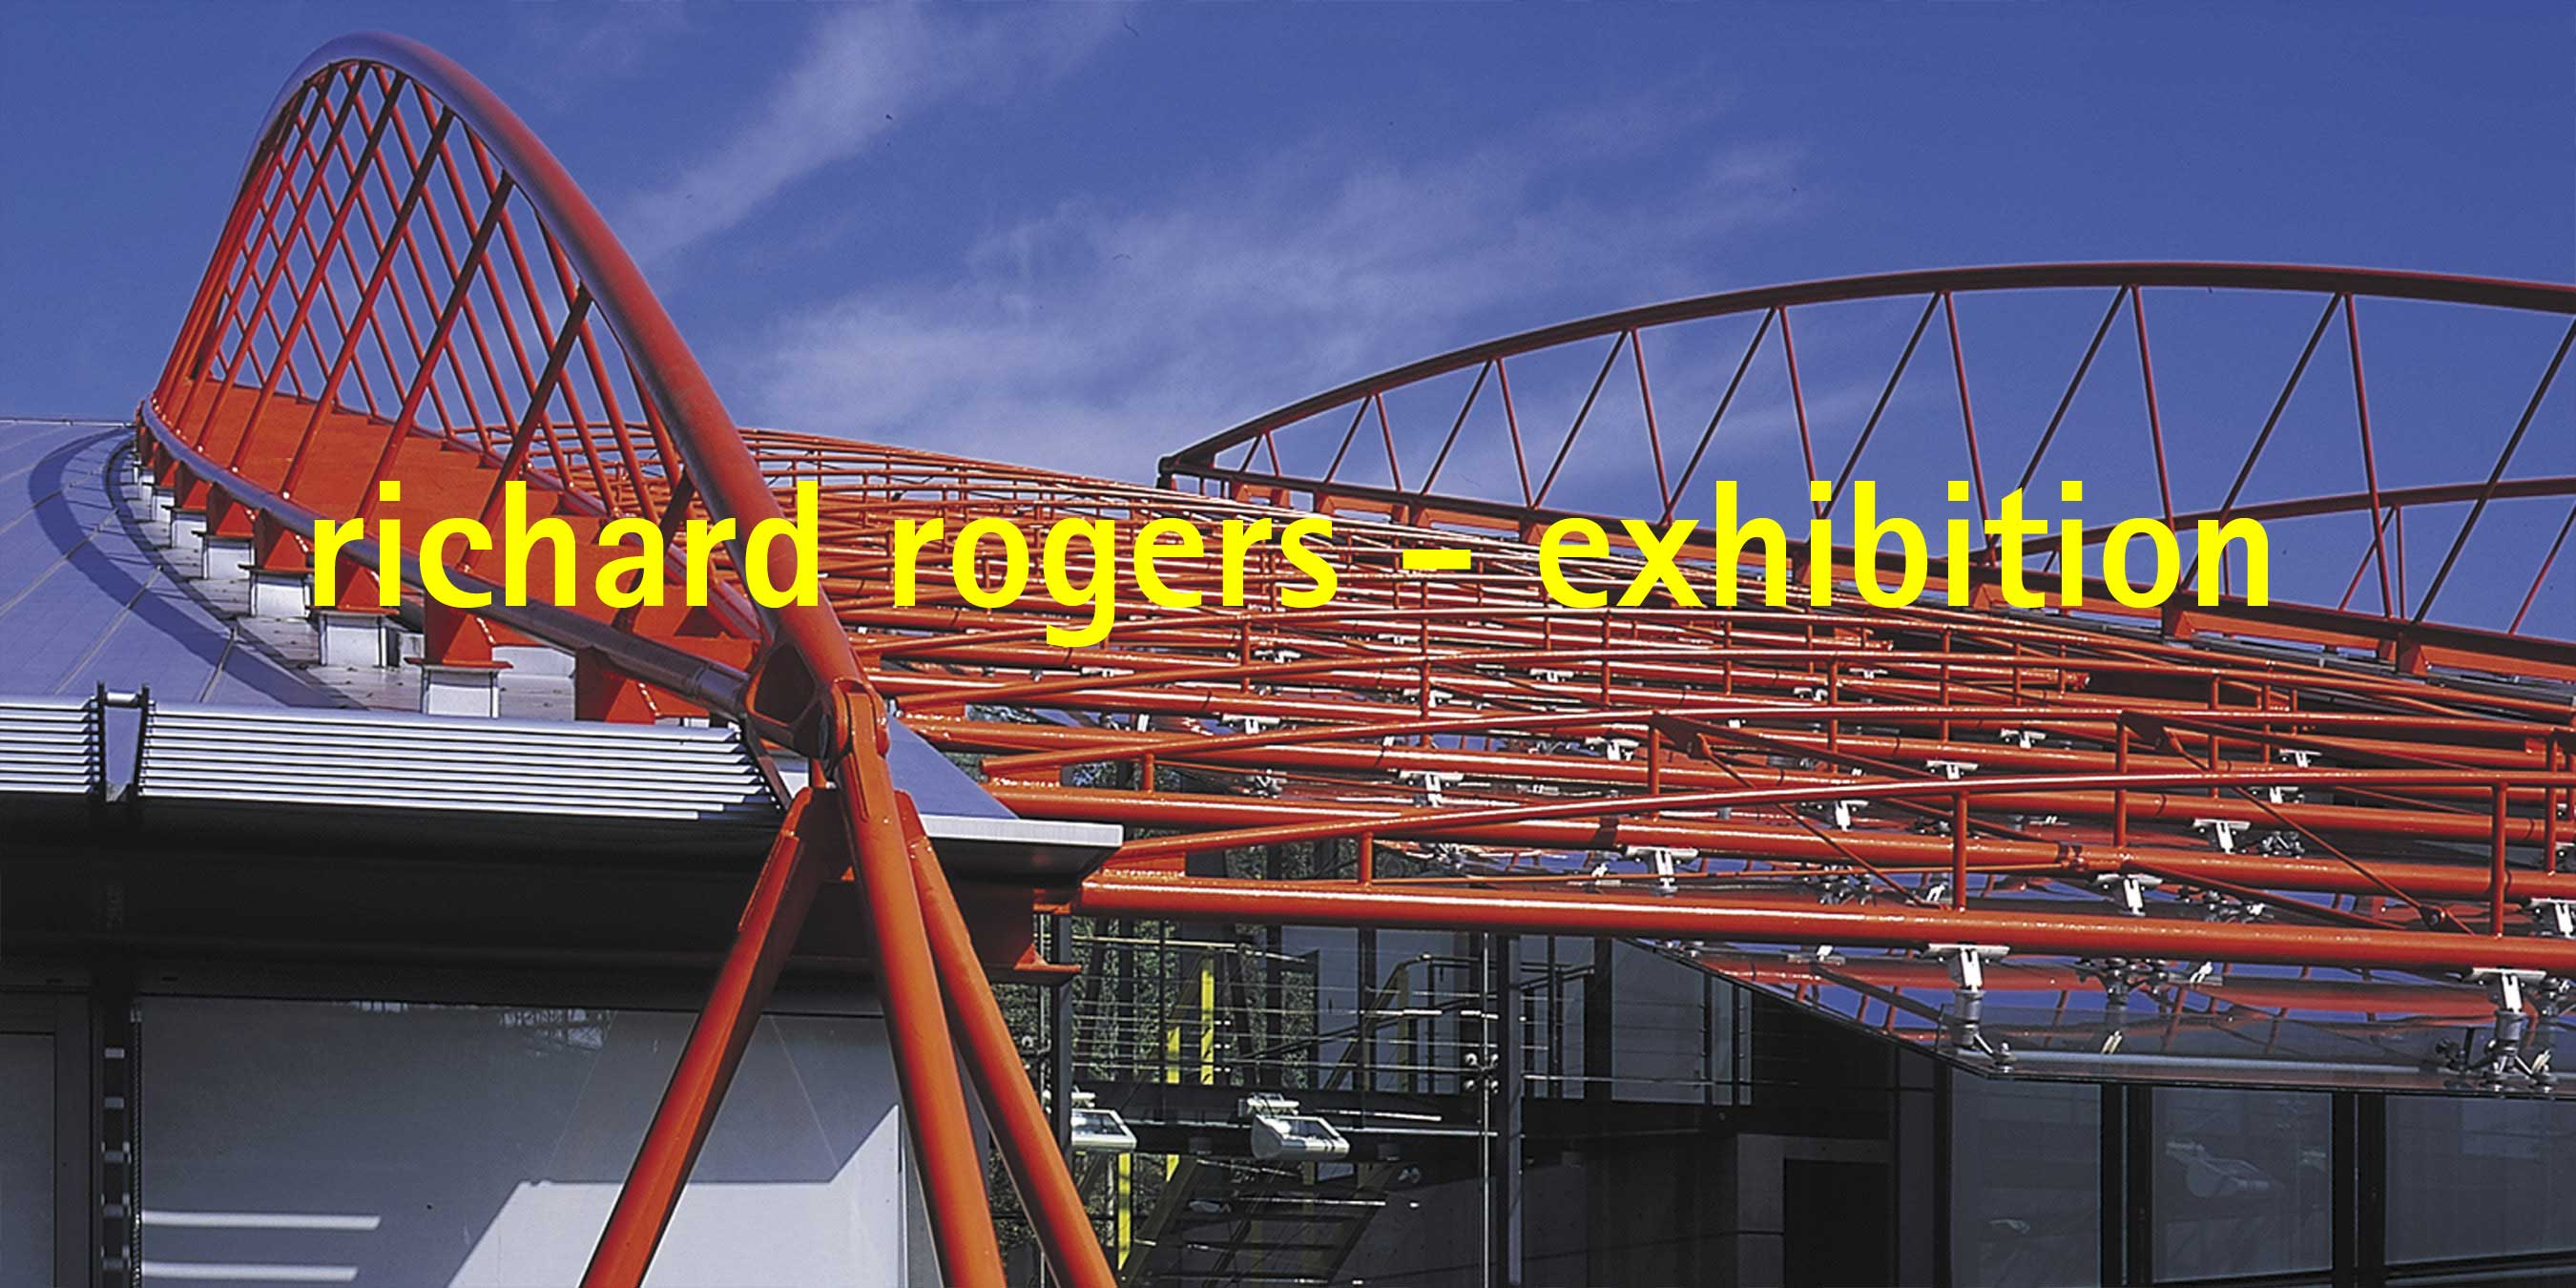 richard rogers exhibition